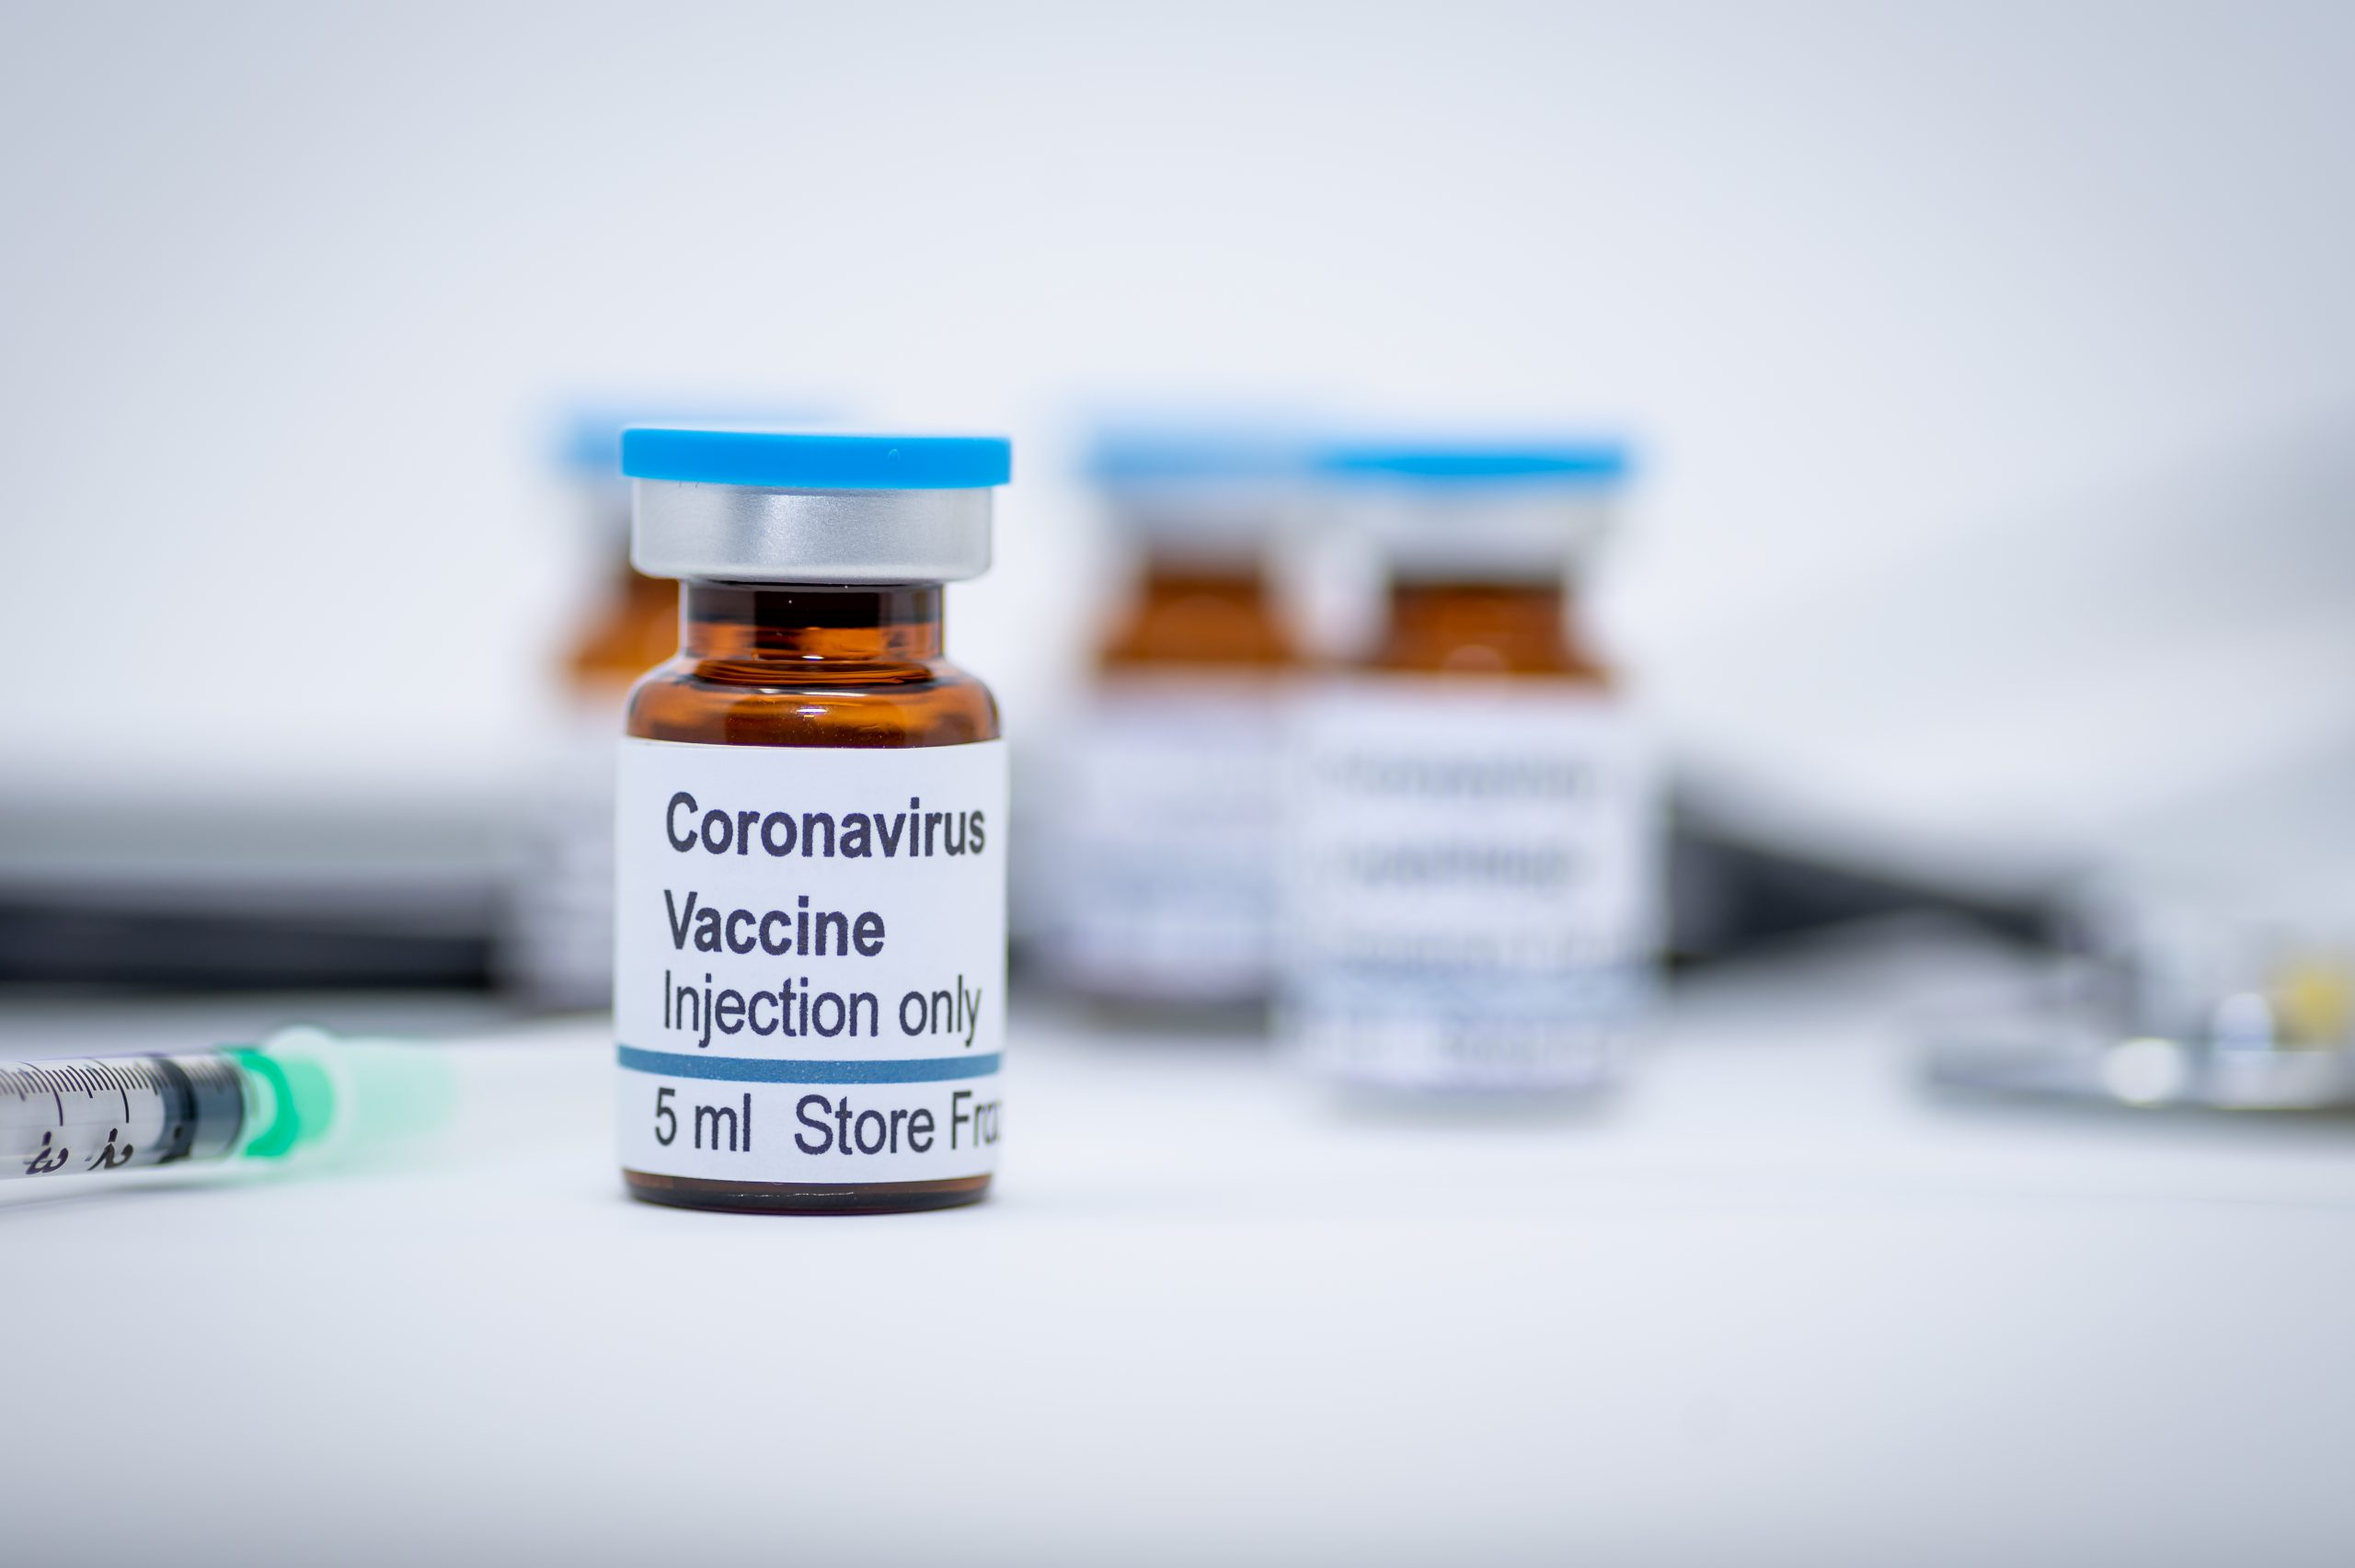 UK coronavirus vaccine trial underway (Abstract Science, April 19 - 25)